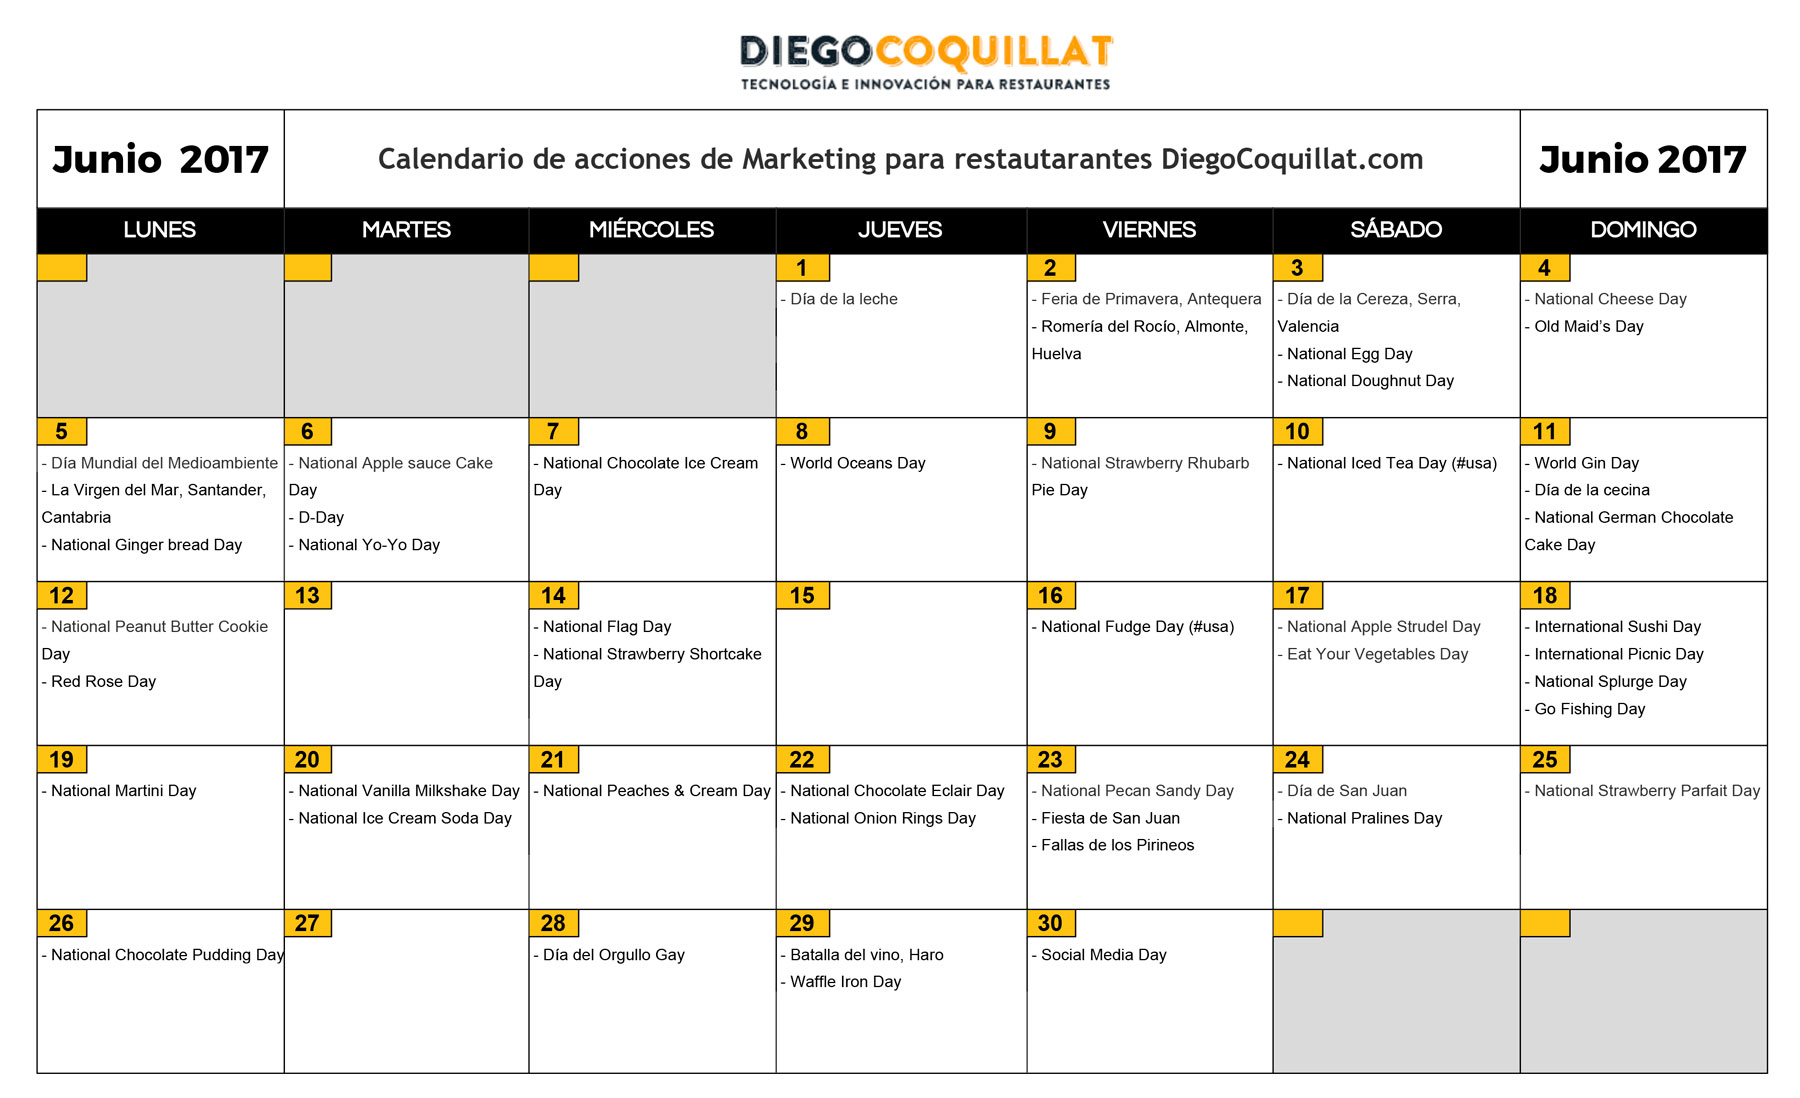 Junio de 2017: marketing activities calendar for restaurants